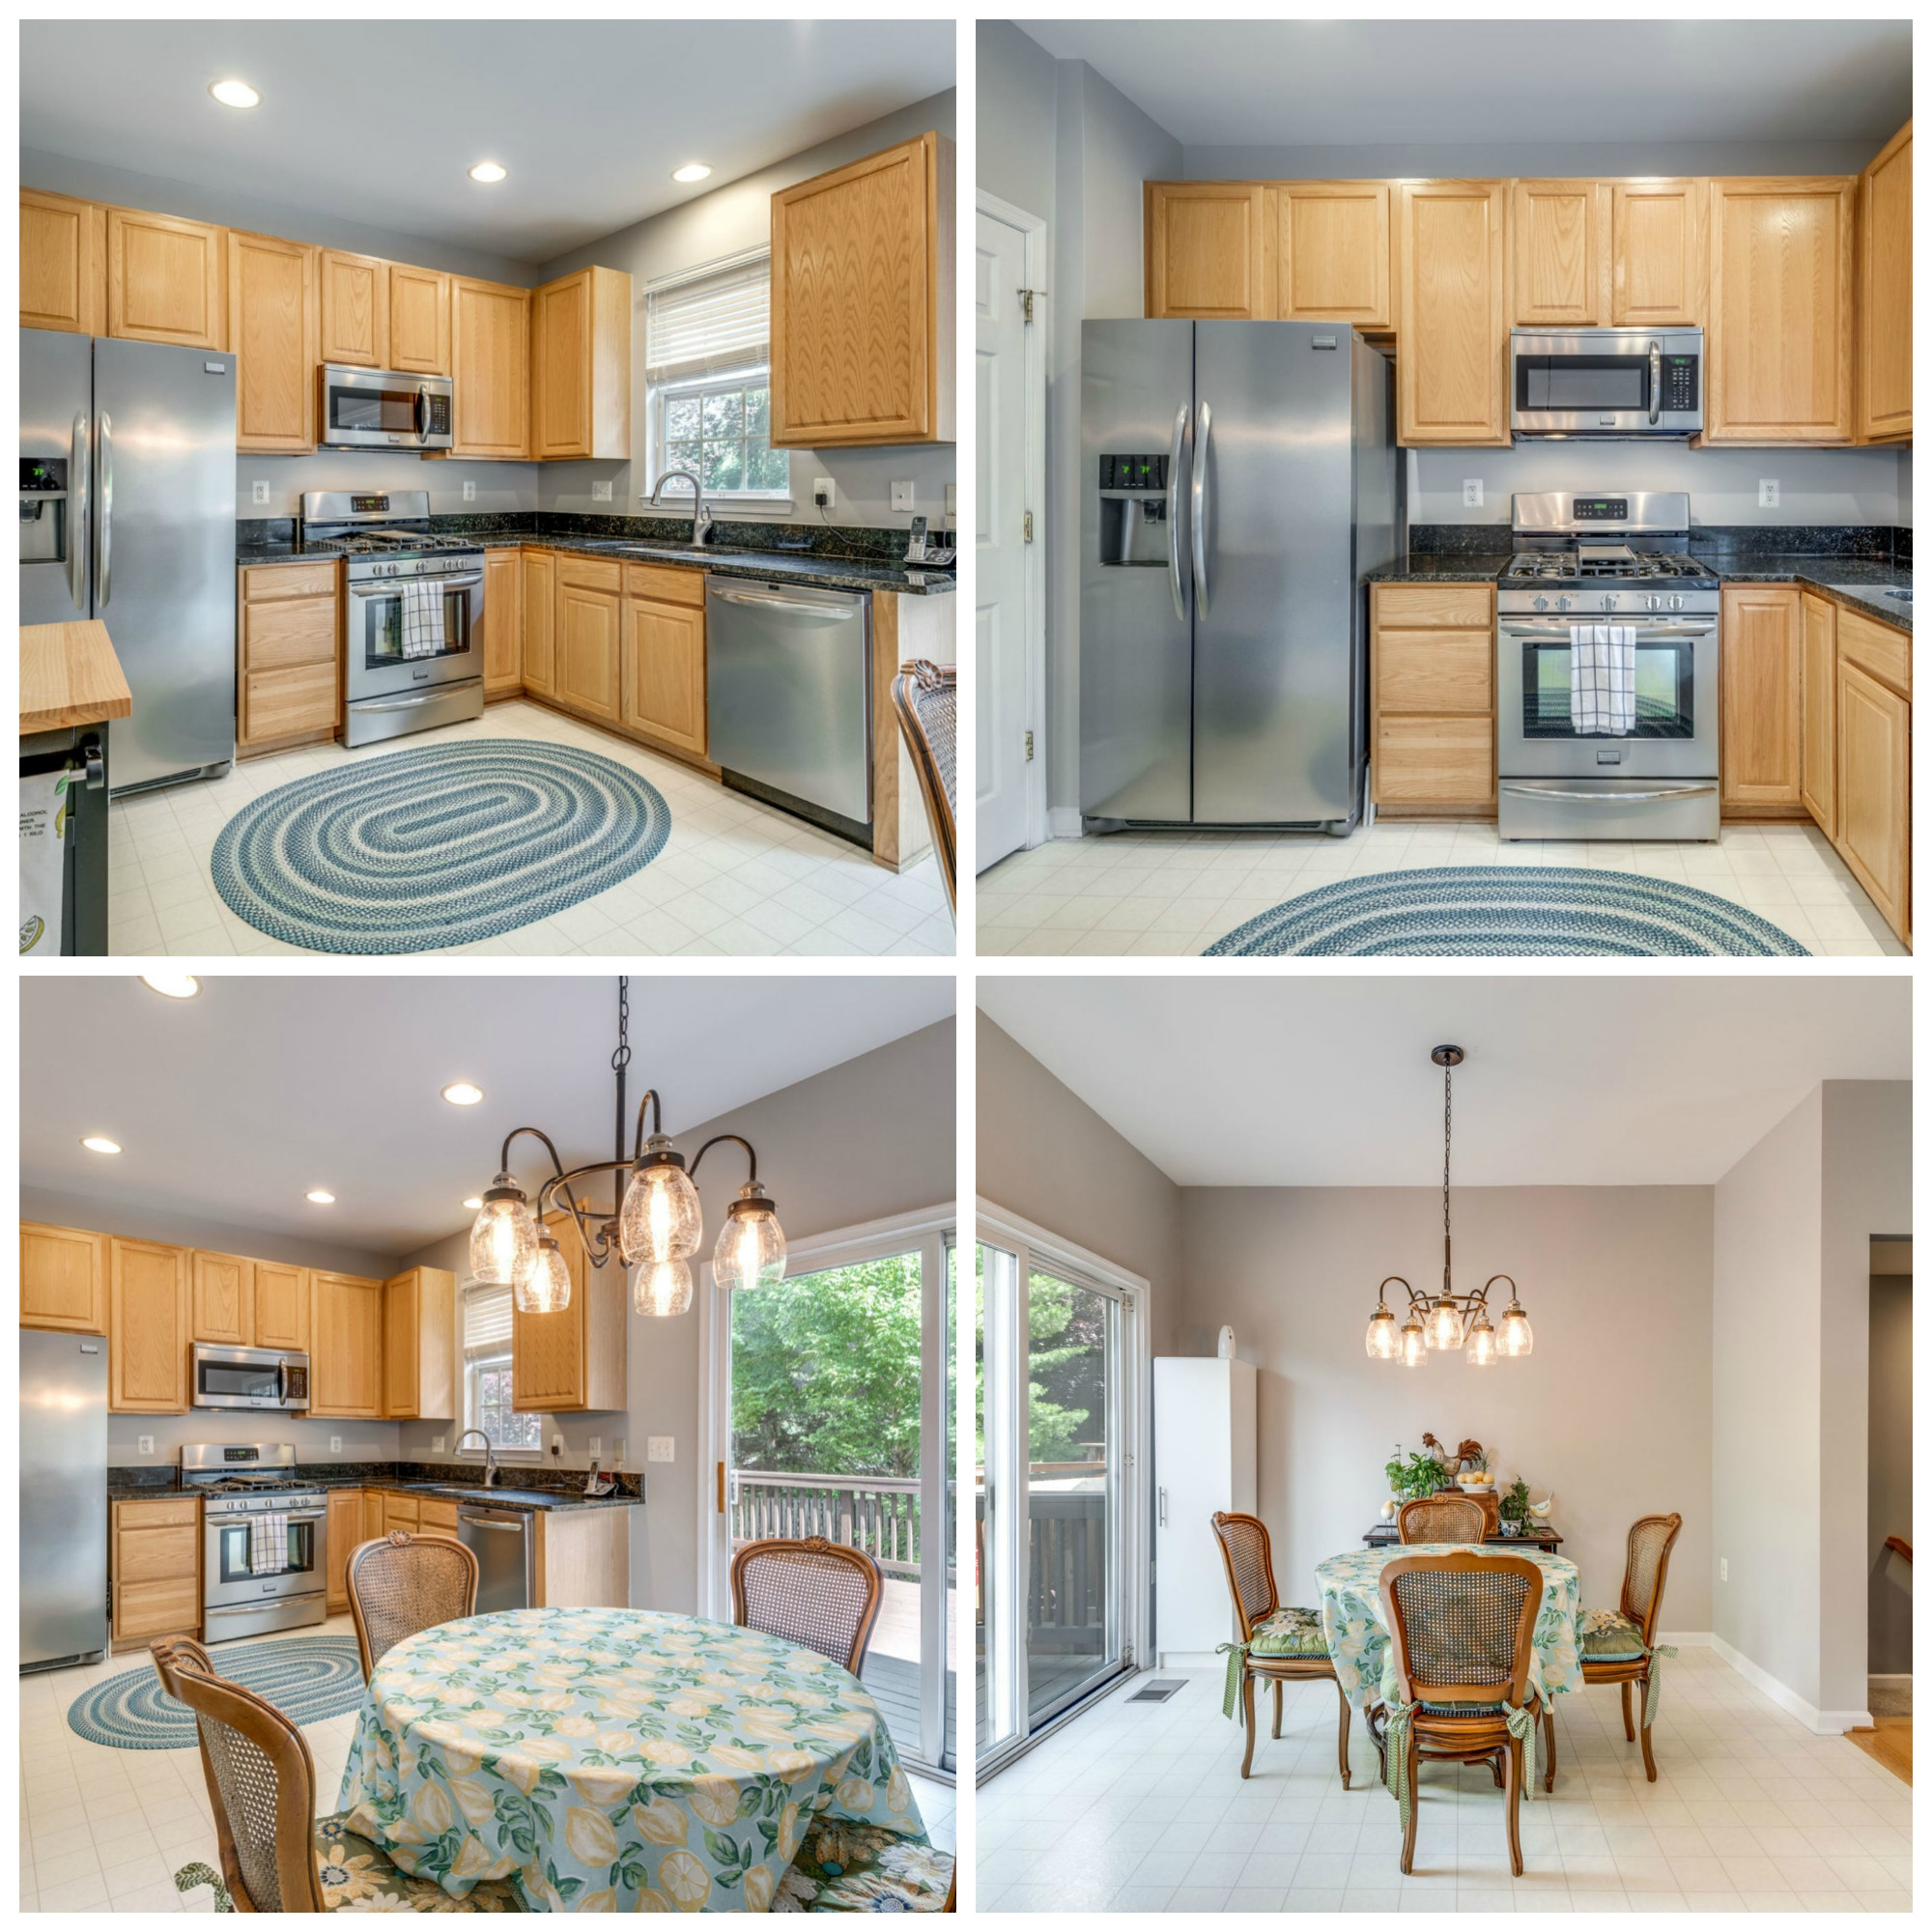 453 Pearlbush Sq NE _ Leesburg _ Kitchen